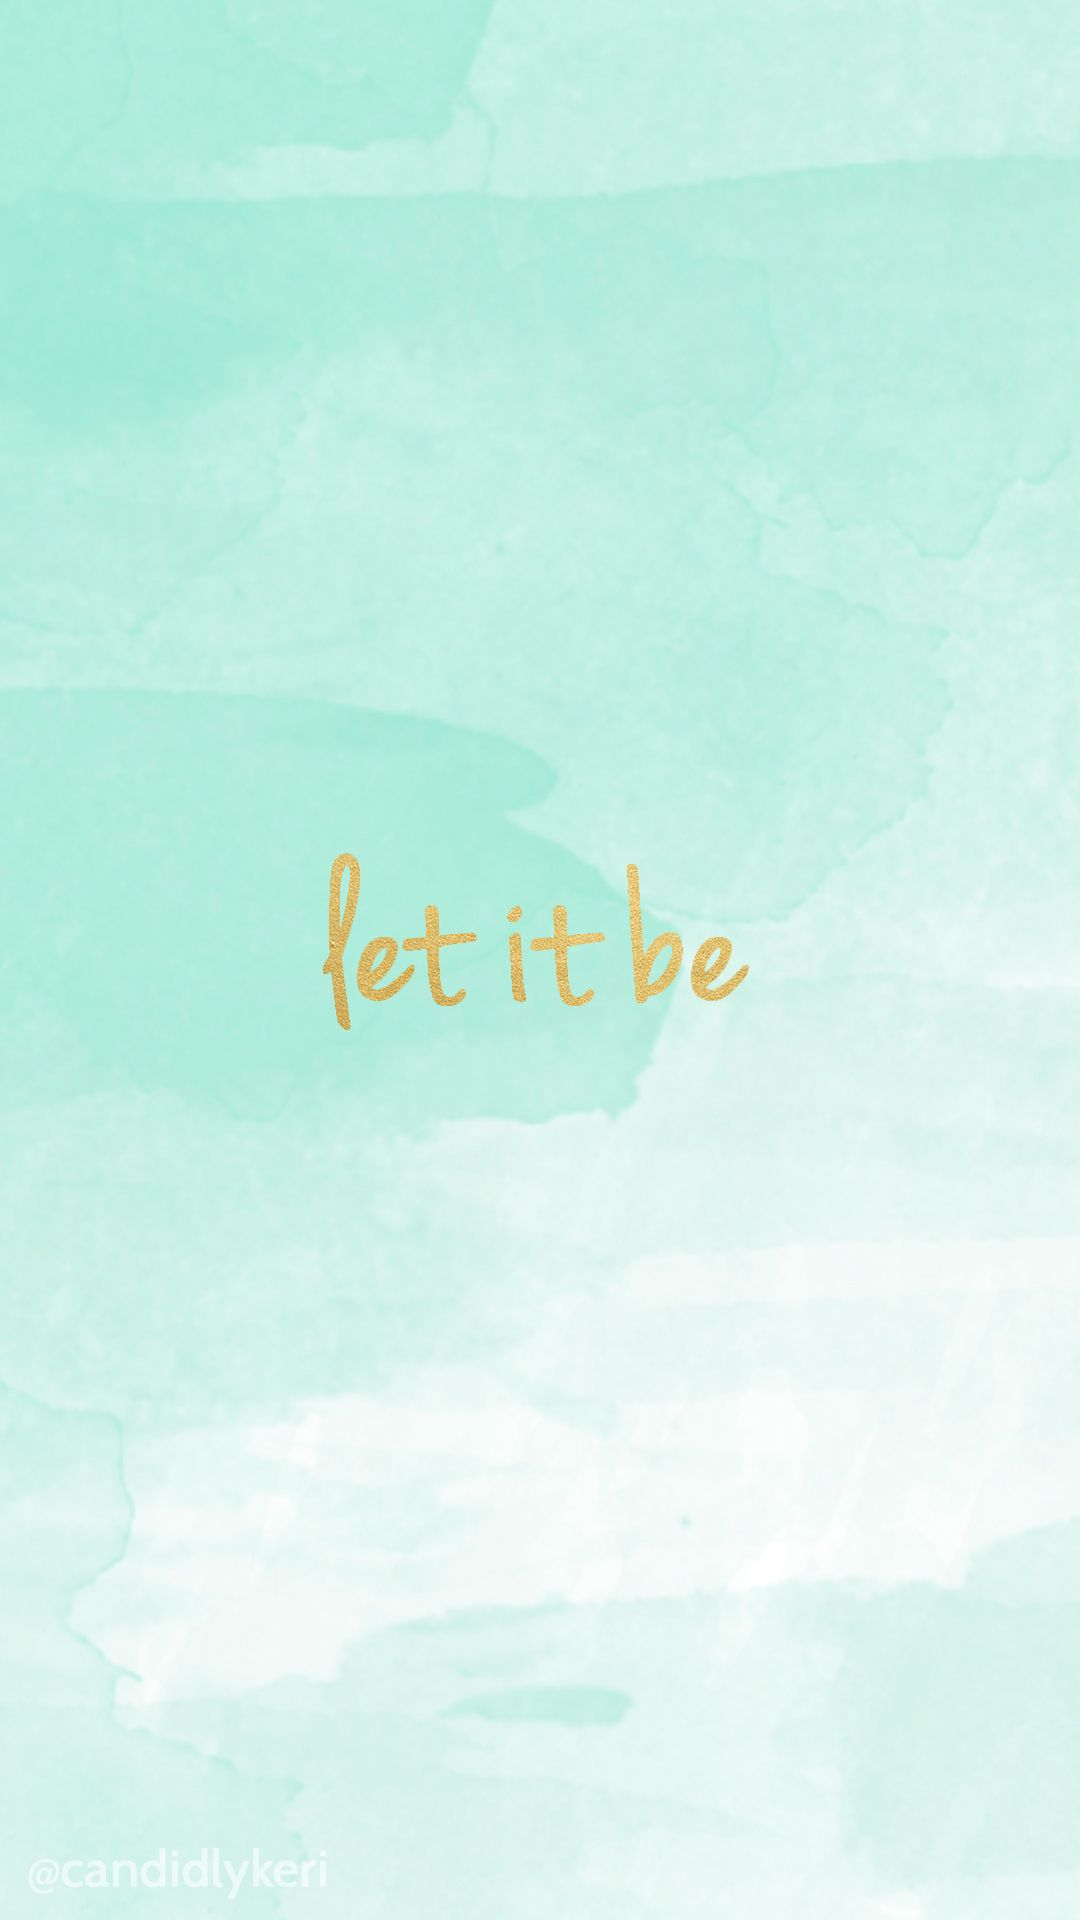 Let It Be Gold Lettering With Blue Watercolor Background Wallpaper